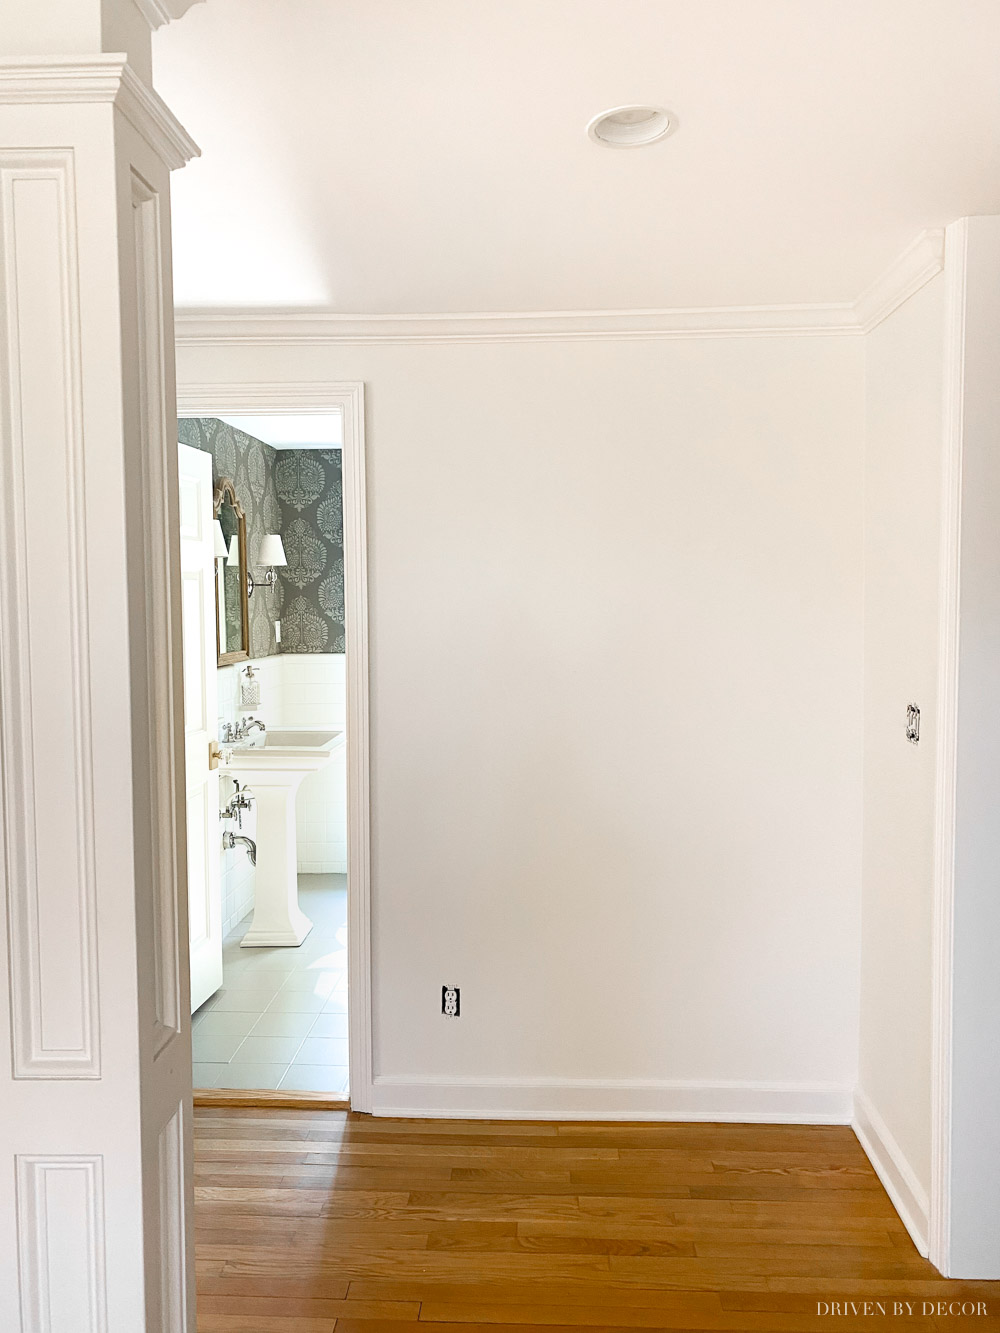 Our entryway painted in Benjamin Moore White Dove